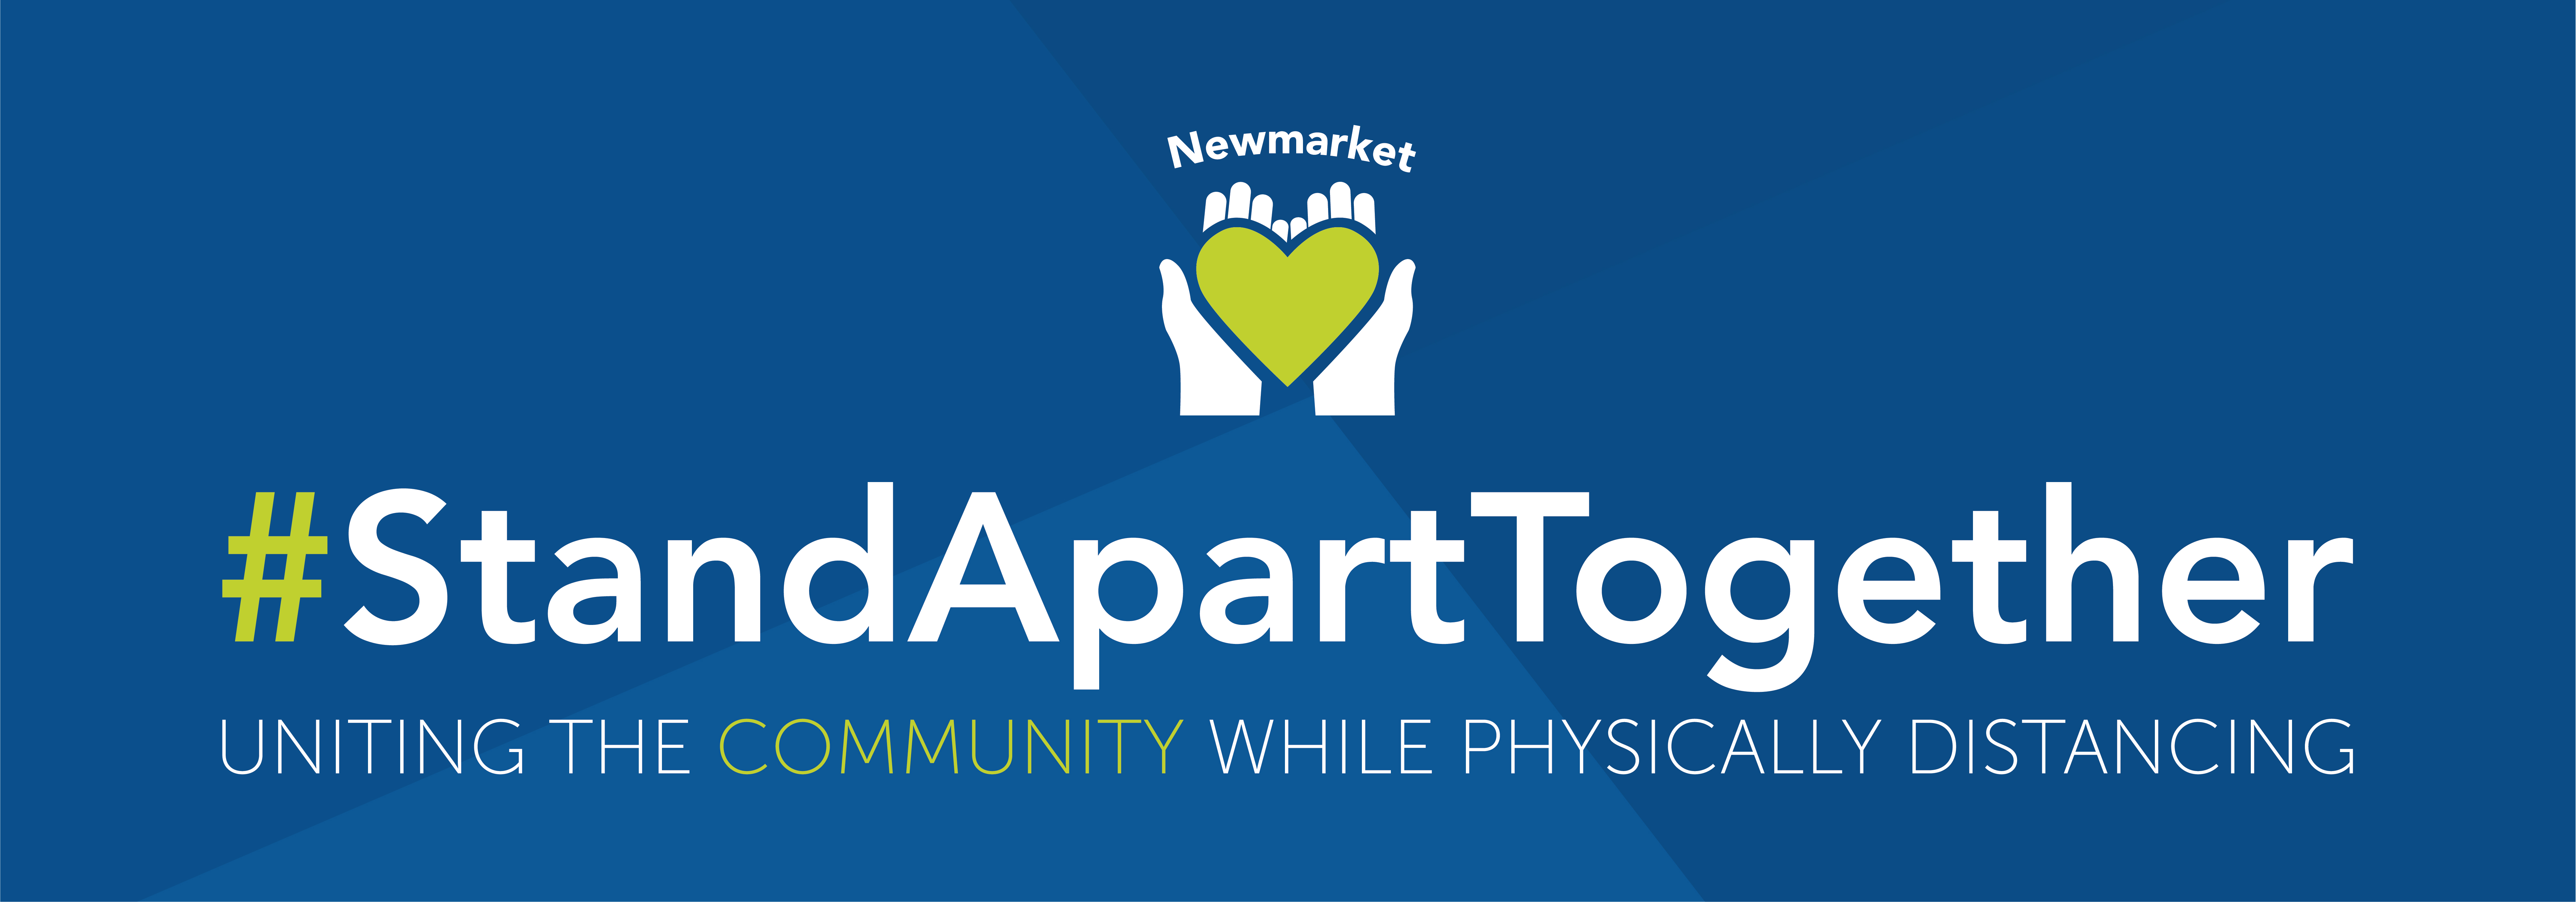 Website banner for Stand Apart Together campaign